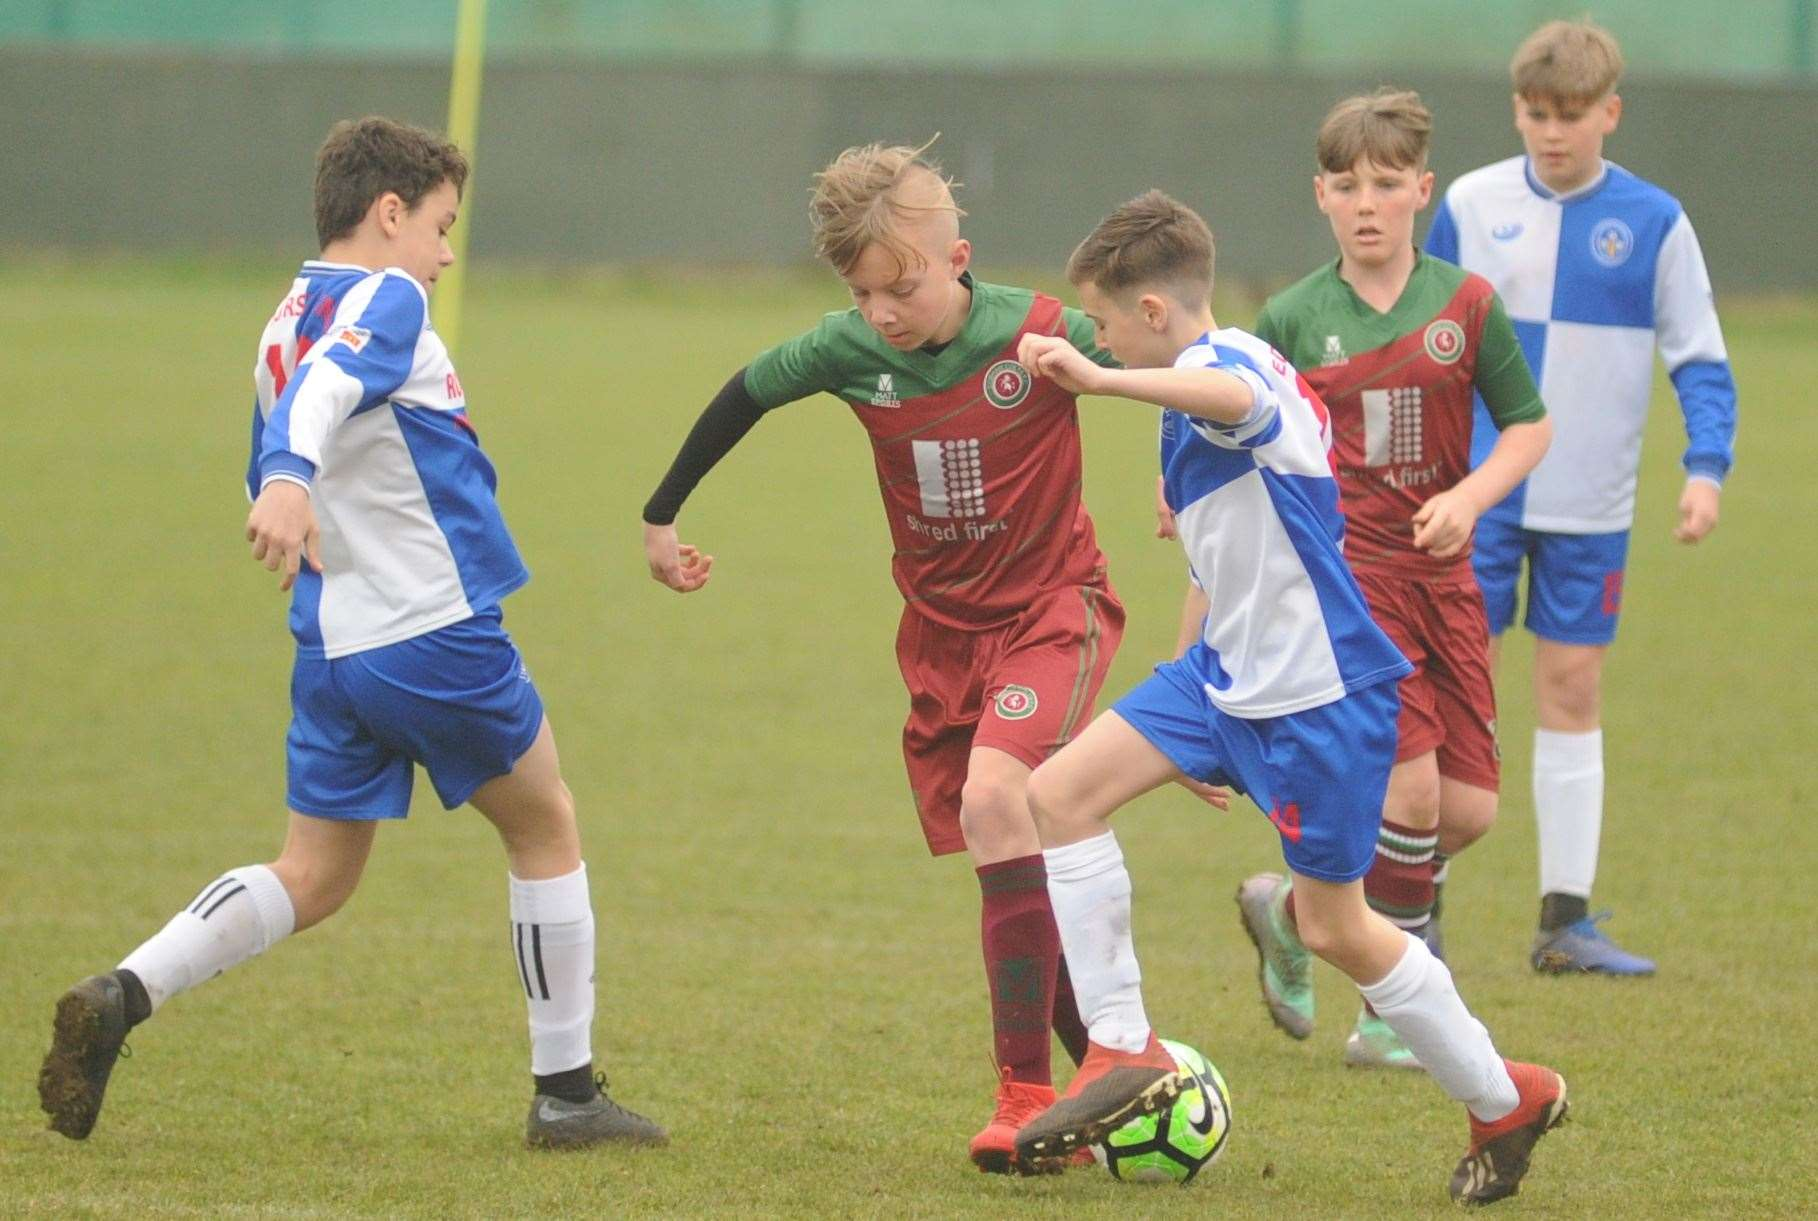 Under-12 League Cup final action between Cobham Colts Blue and Bredhurst Juniors Picture: Steve Crispe